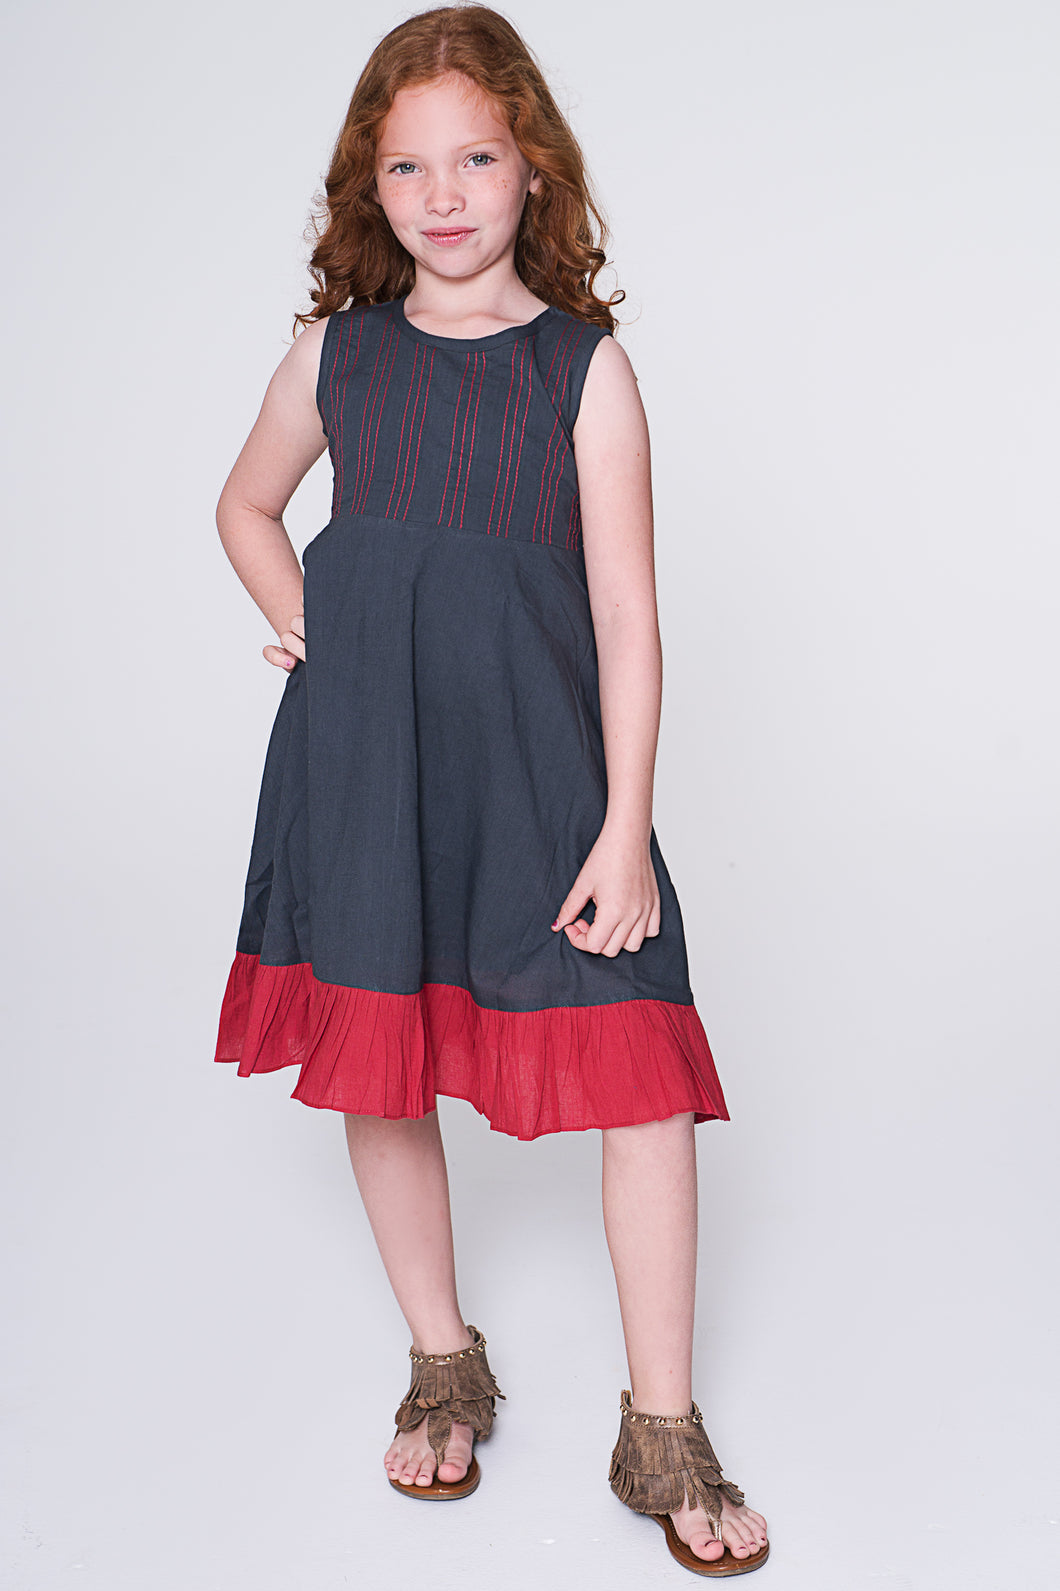 Grey & Red Contrast Stitch Shift Dress - Kids Wholesale Boutique Clothing, Dress - Girls Dresses, Yo Baby Wholesale - Yo Baby